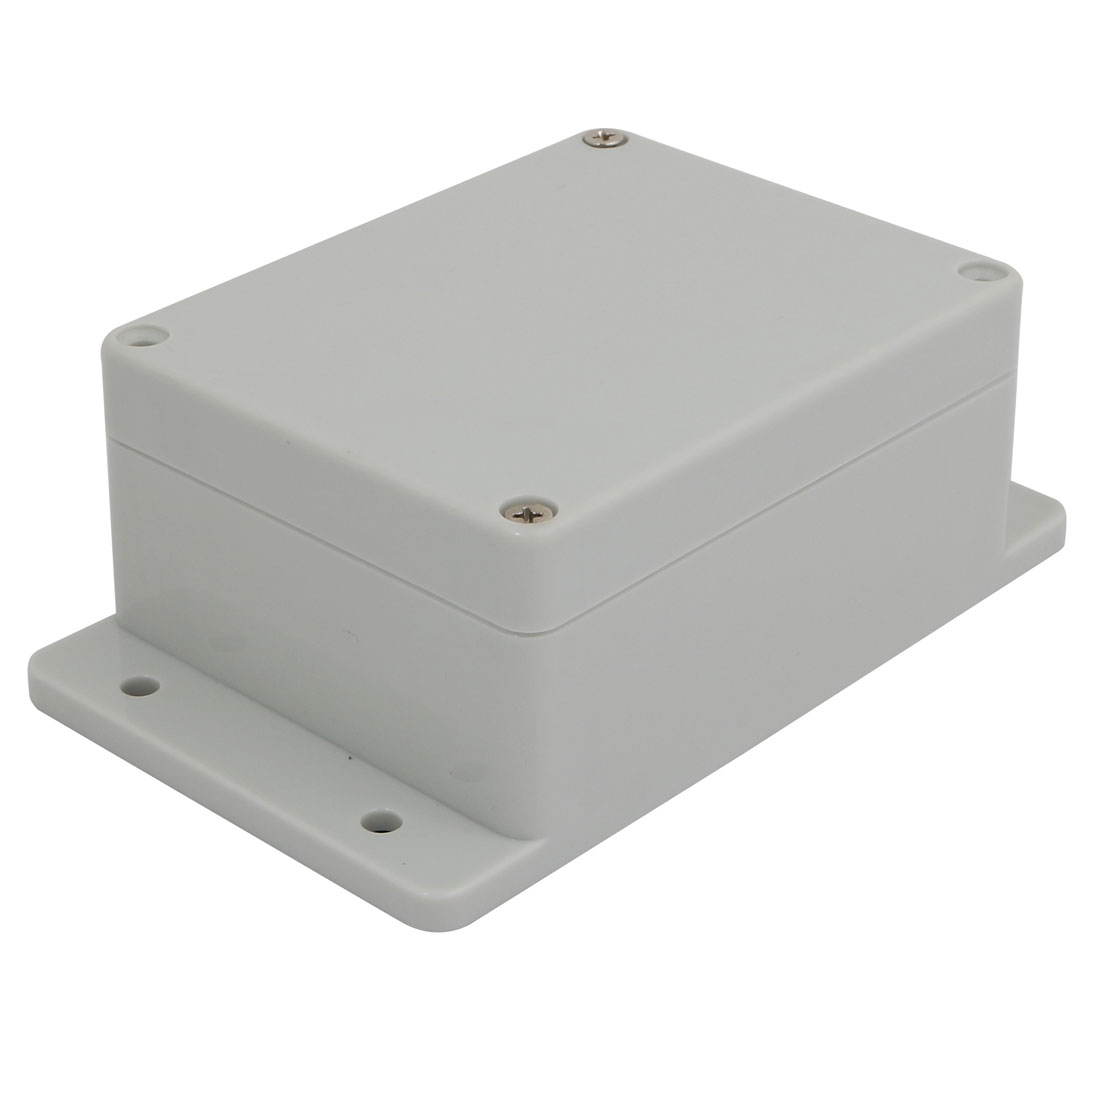 115mmx90mmx55mm Electronic ABS Plastic DIY Junction Box Enclosure Case Gray